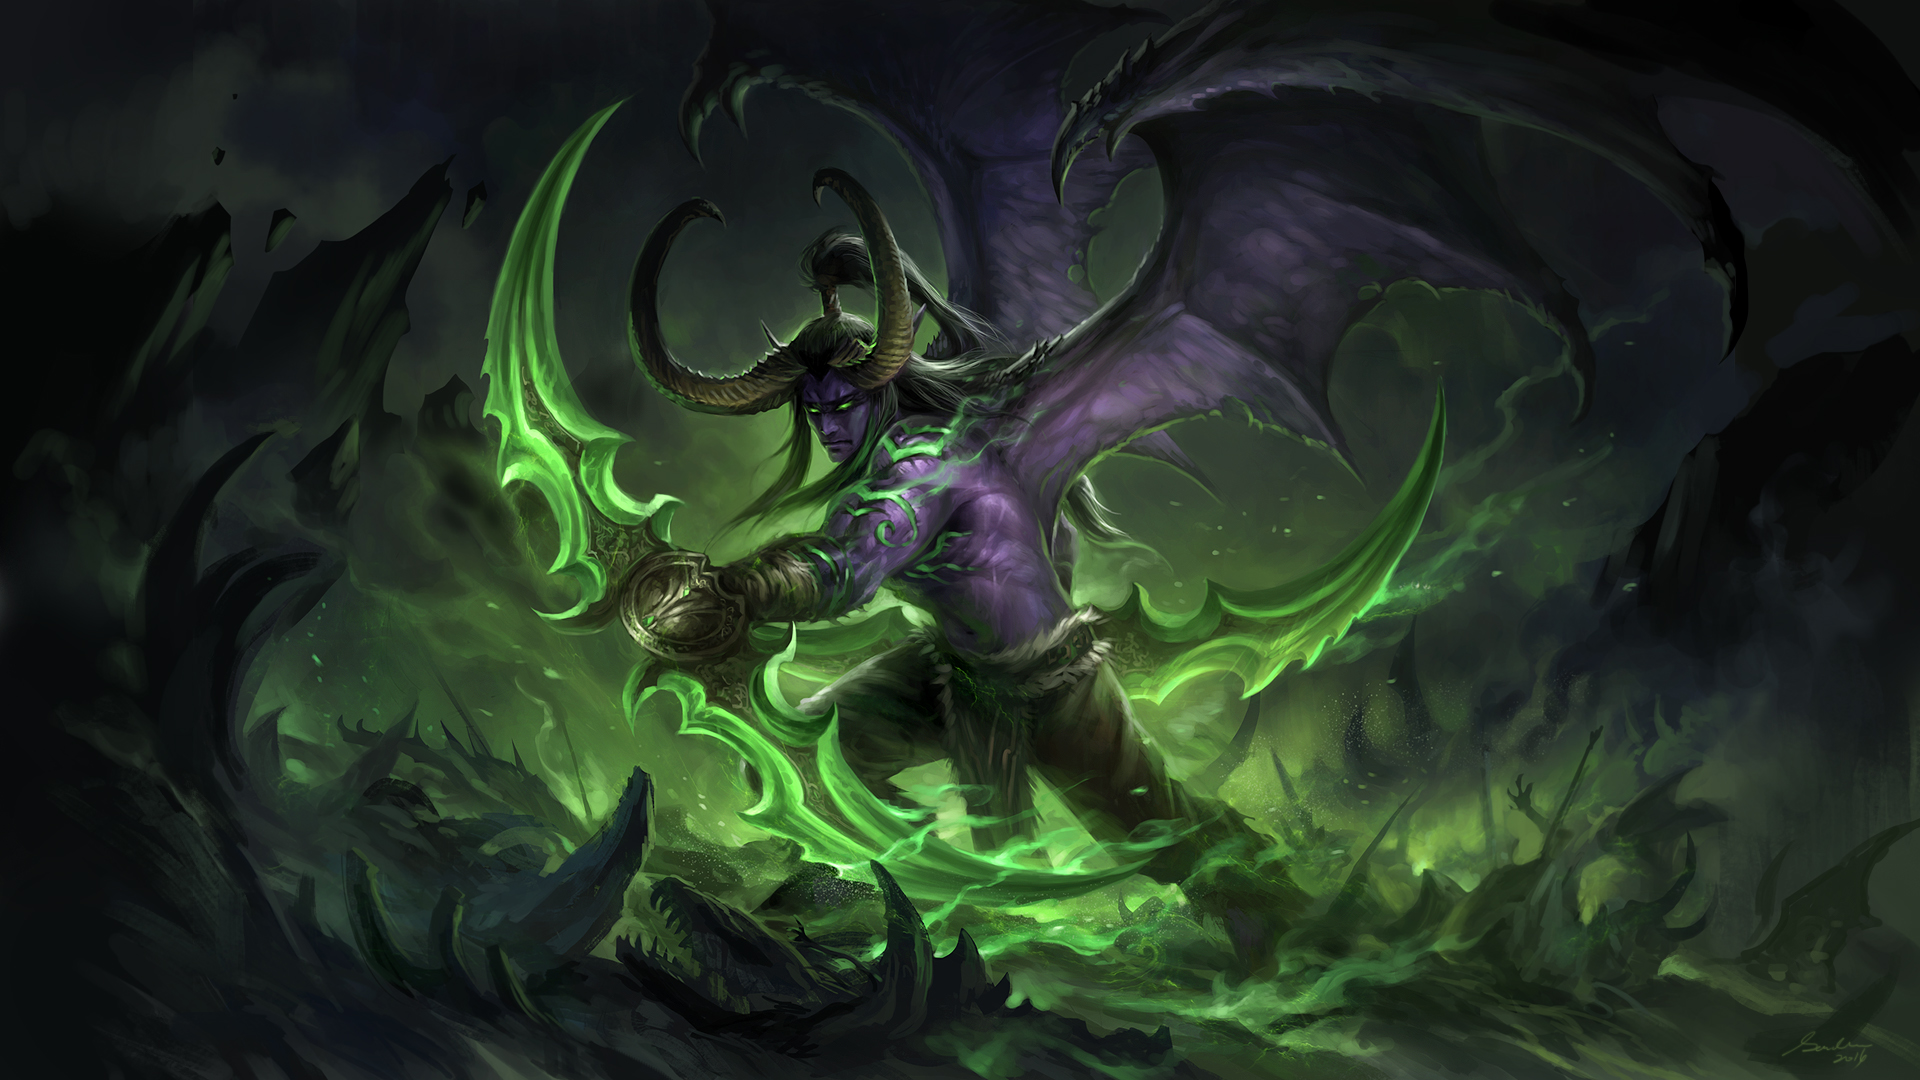 illidan__large_ver__by_sandara-da5npbk.jpg